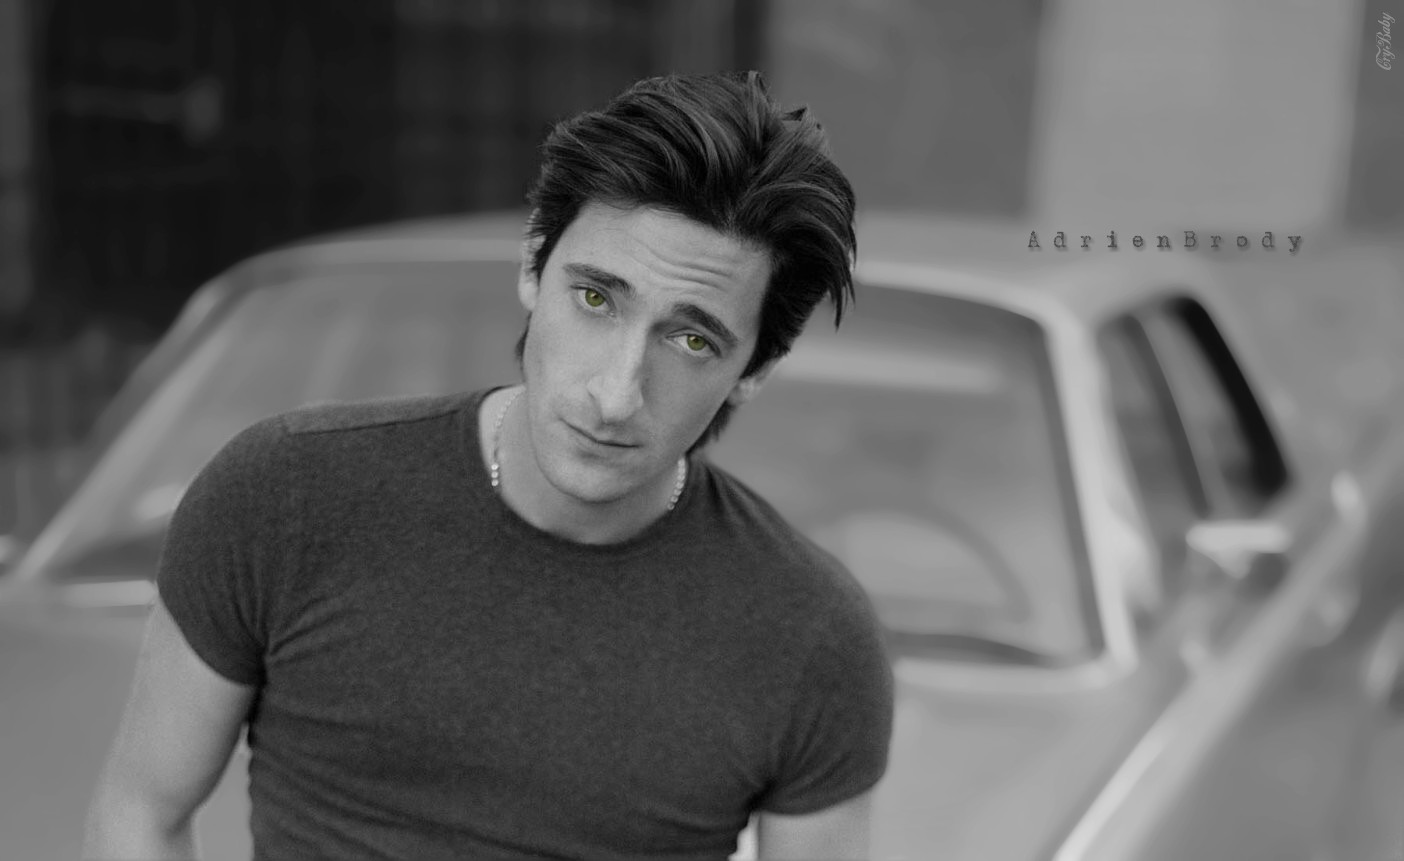 Adrien Brody Wallpaper Hd